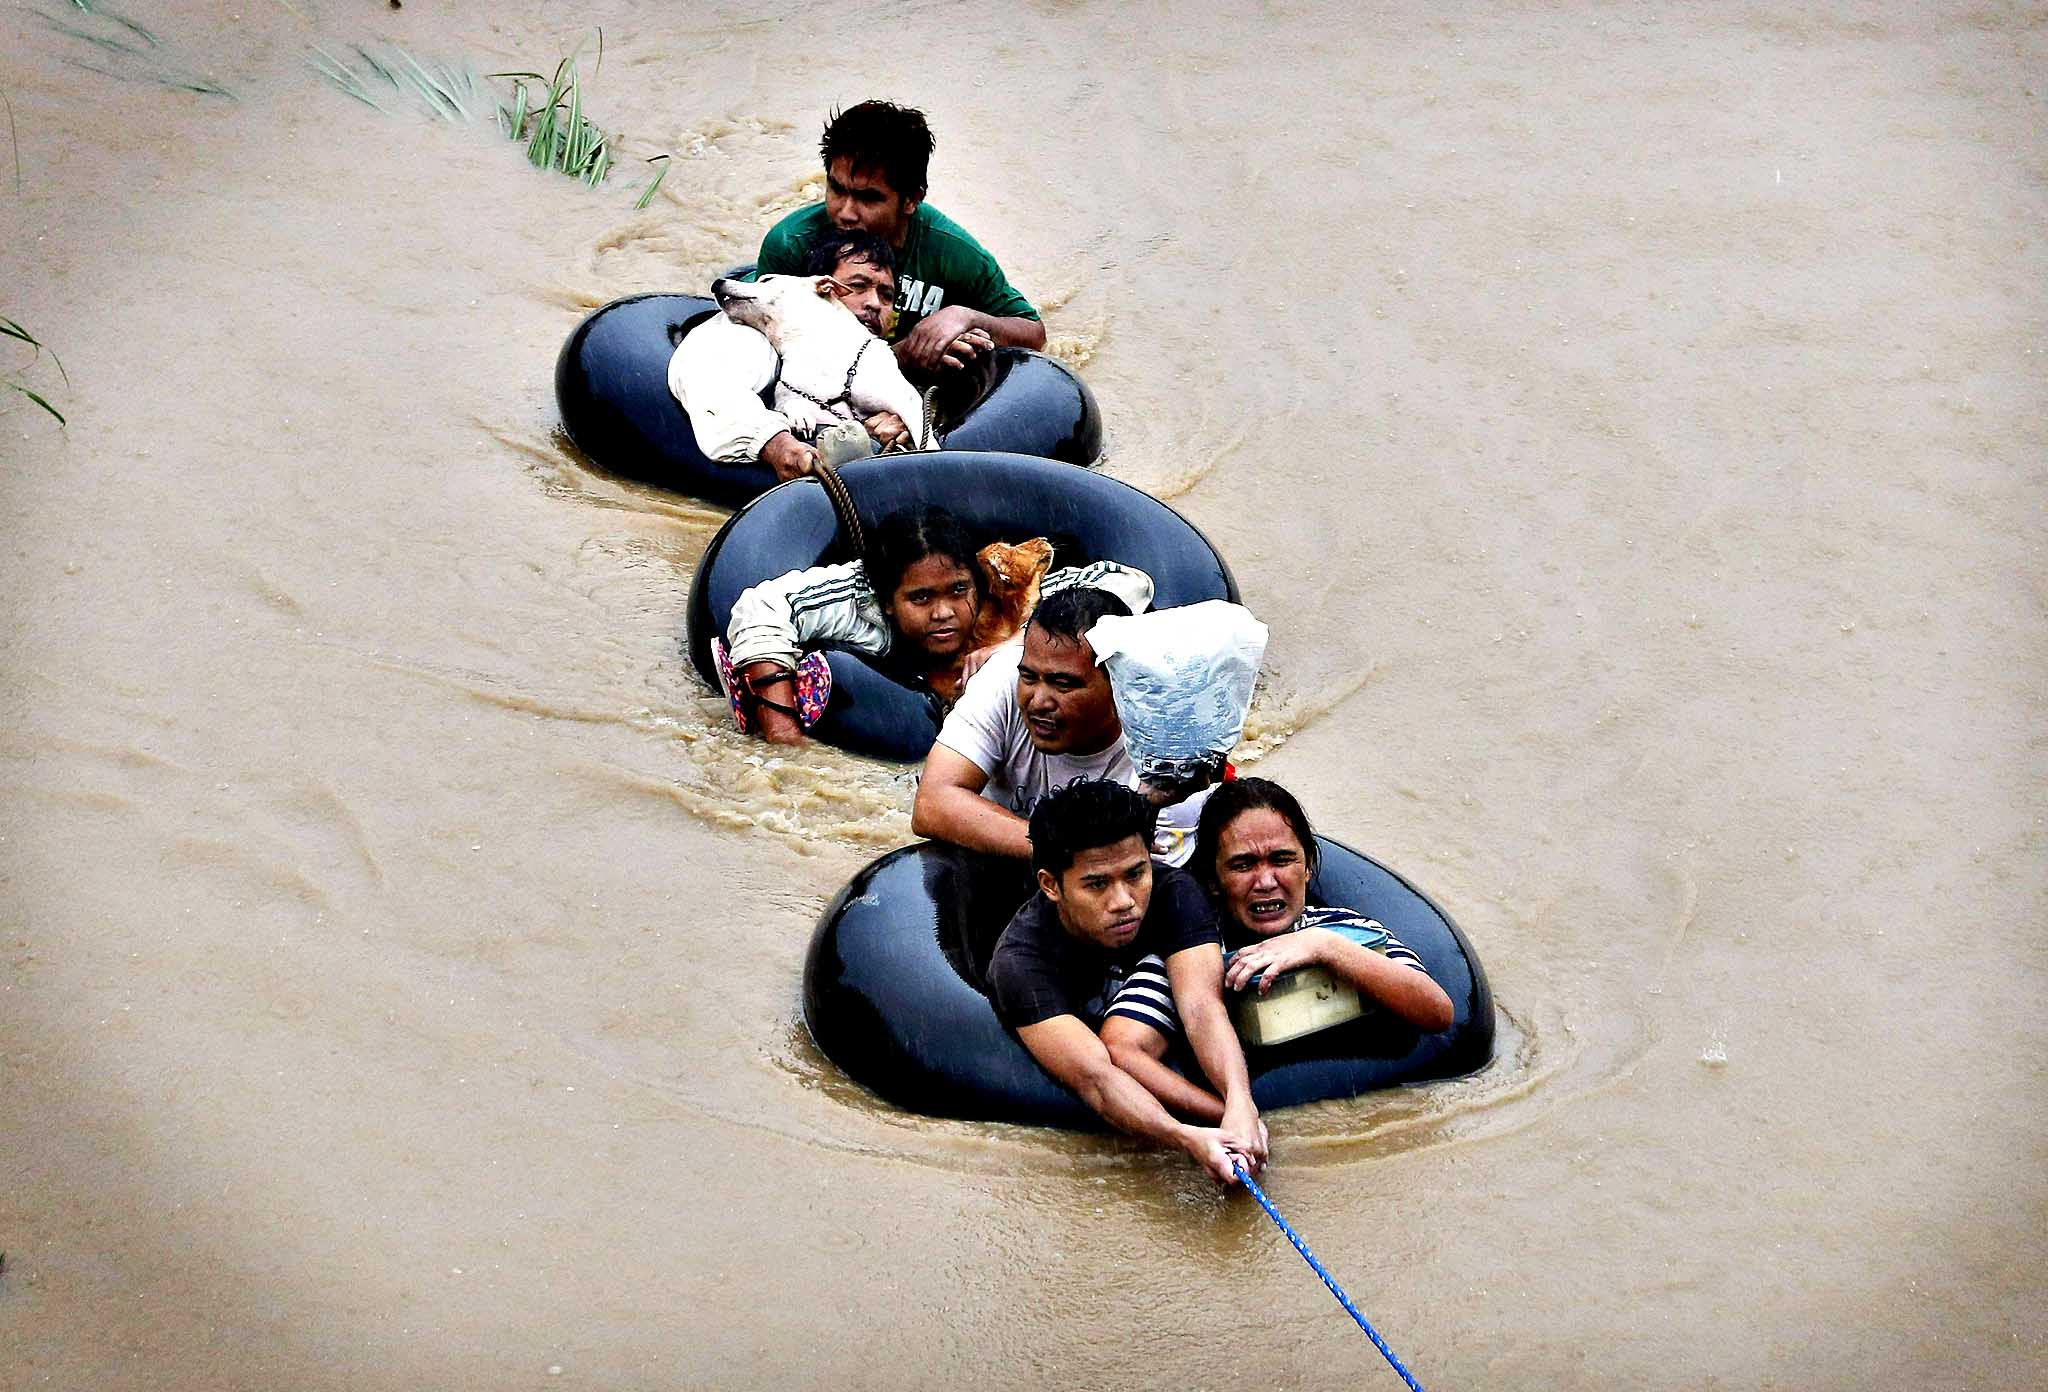 "Flood victims are pulled on inflatable tire tubes as they are evacuated from heavy flooding brought by tropical depression ""Agaton"", in Butuan, in the southern Philippine island of Mindanao January 20, 2014. Floods and landslides caused by tropical depression ""Agaton""  have killed 40 people and more than 500,000 people are displaced in Mindanao, the National Disaster Risk Reduction and Management Council reported on Sunday."